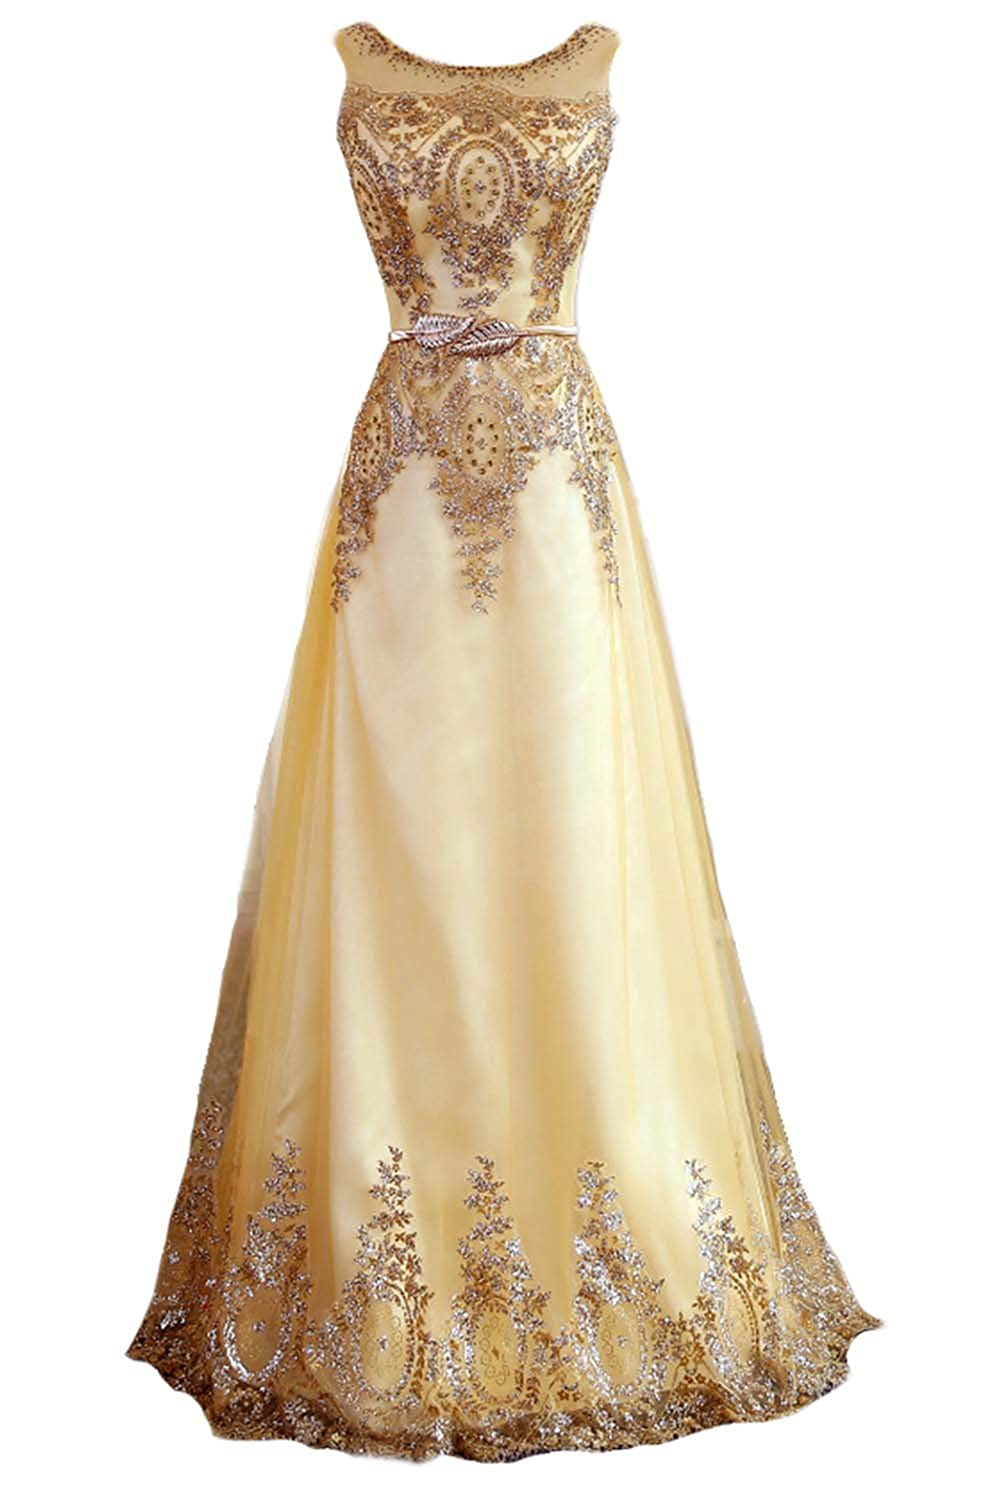 Fanhao Womens Sequined Plume Belt Lace Up Gold Long Prom Bridesmaid